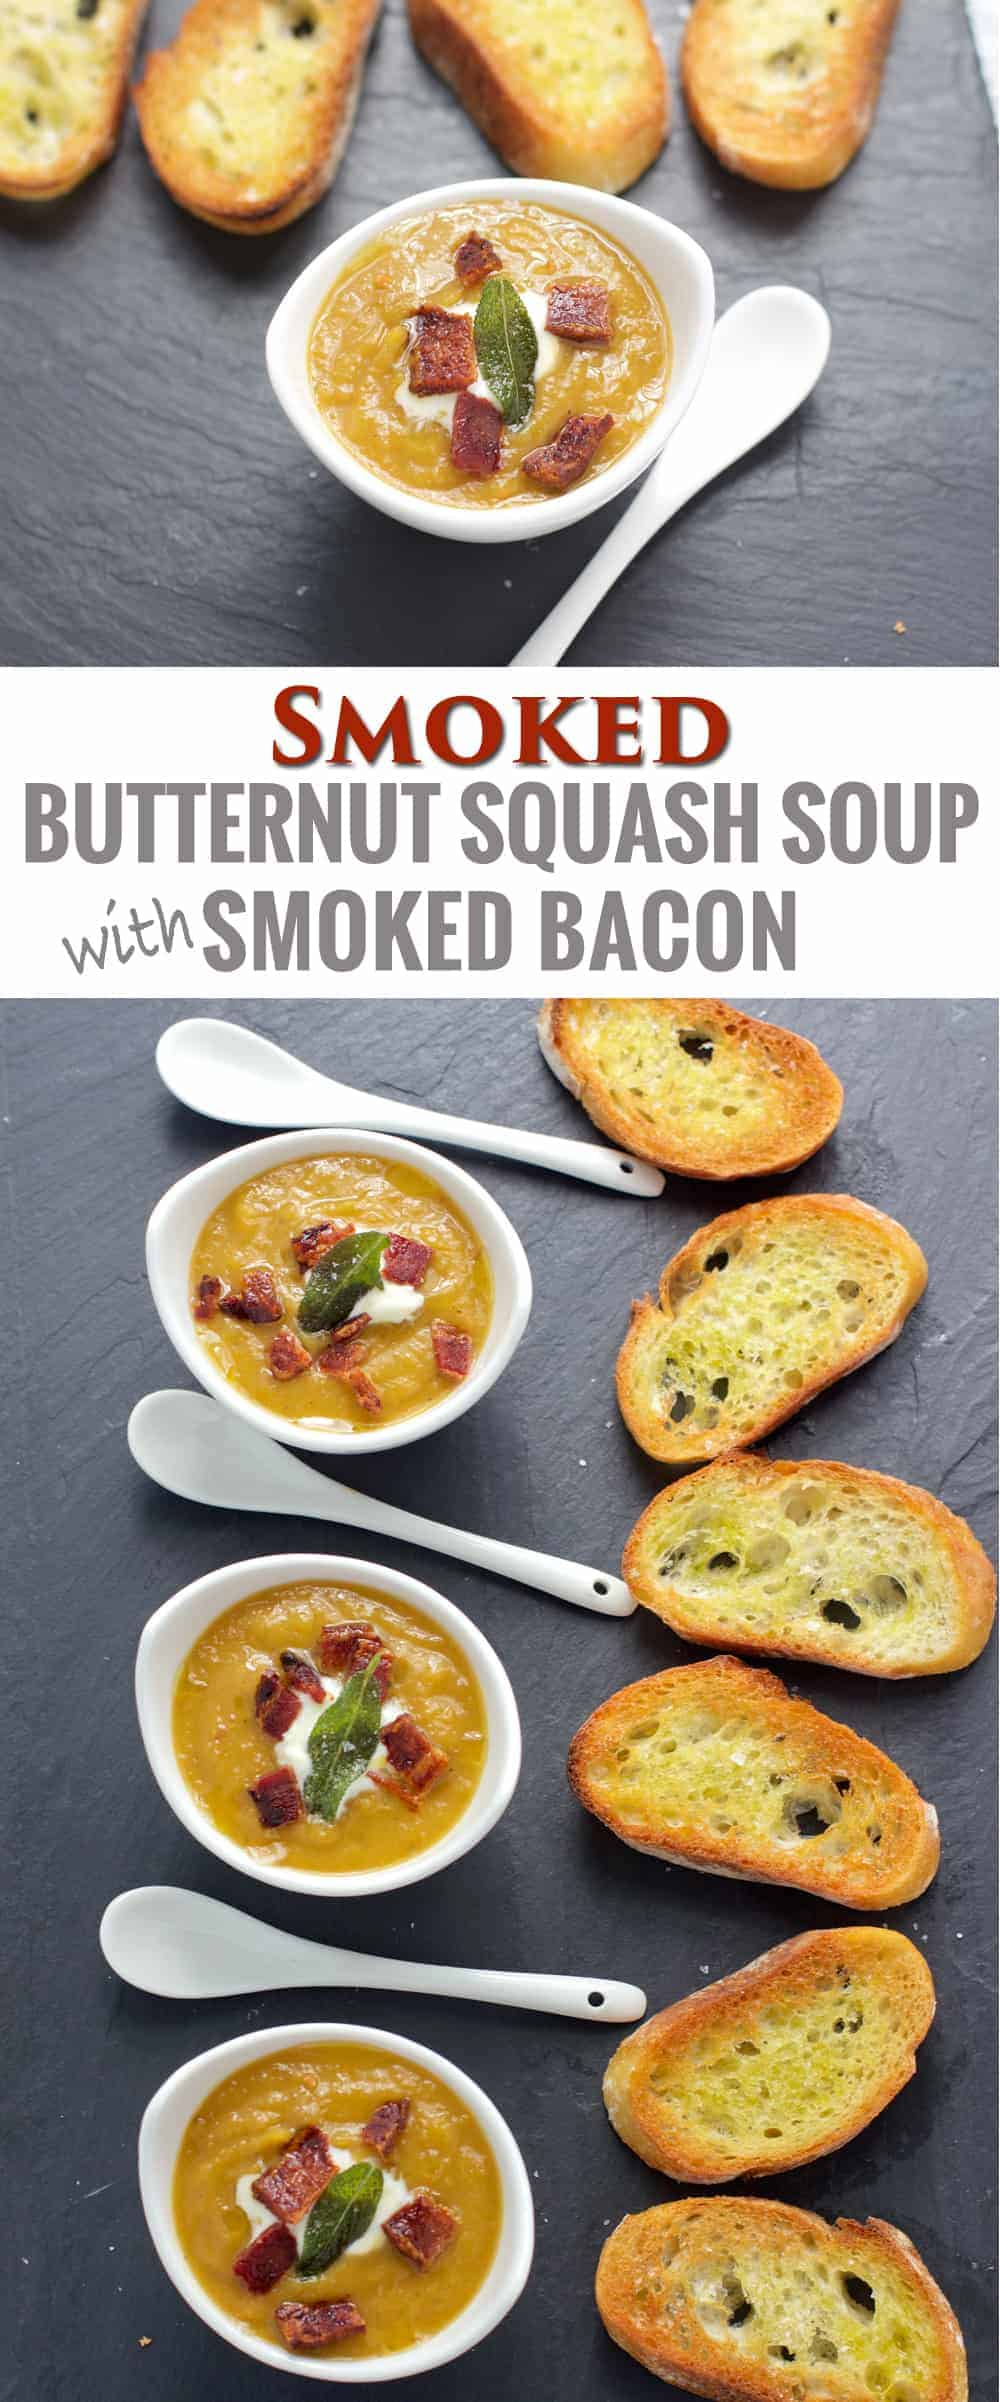 Smoked Butternut Squash Soup with Smoked Bacon and Fried Sage. The perfect appetizer for Thanksgiving!